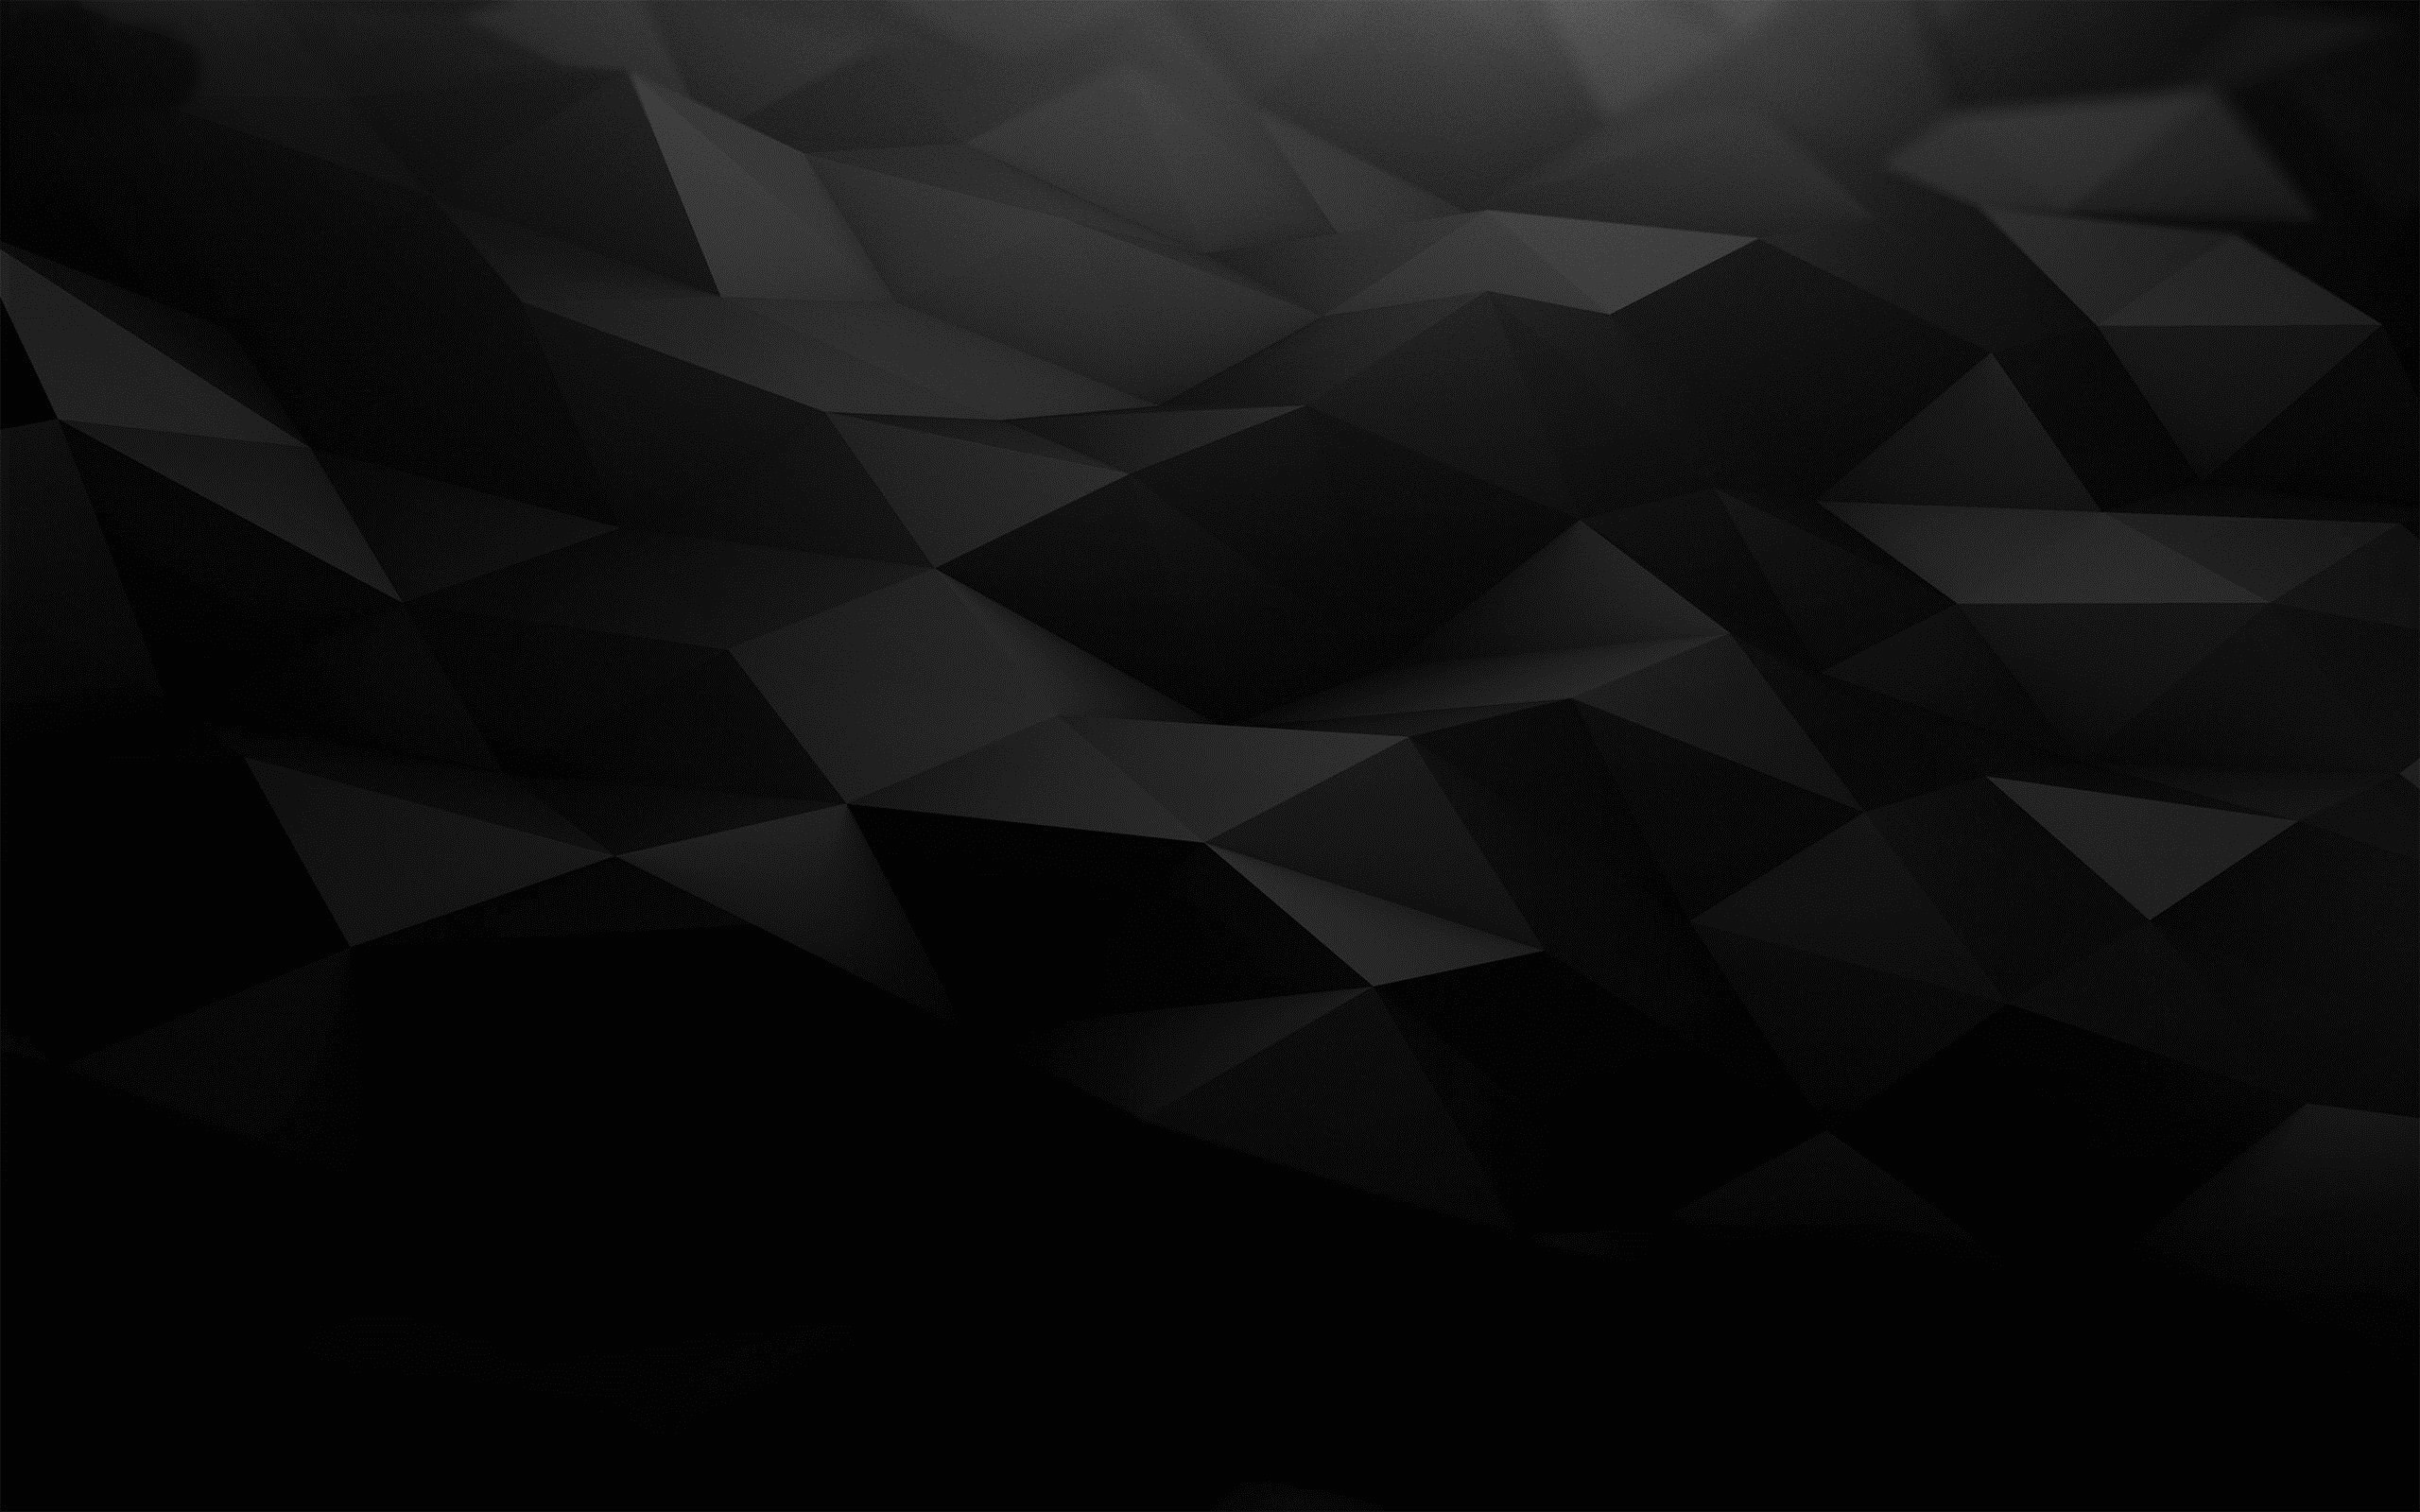 Black Abstract Background 8